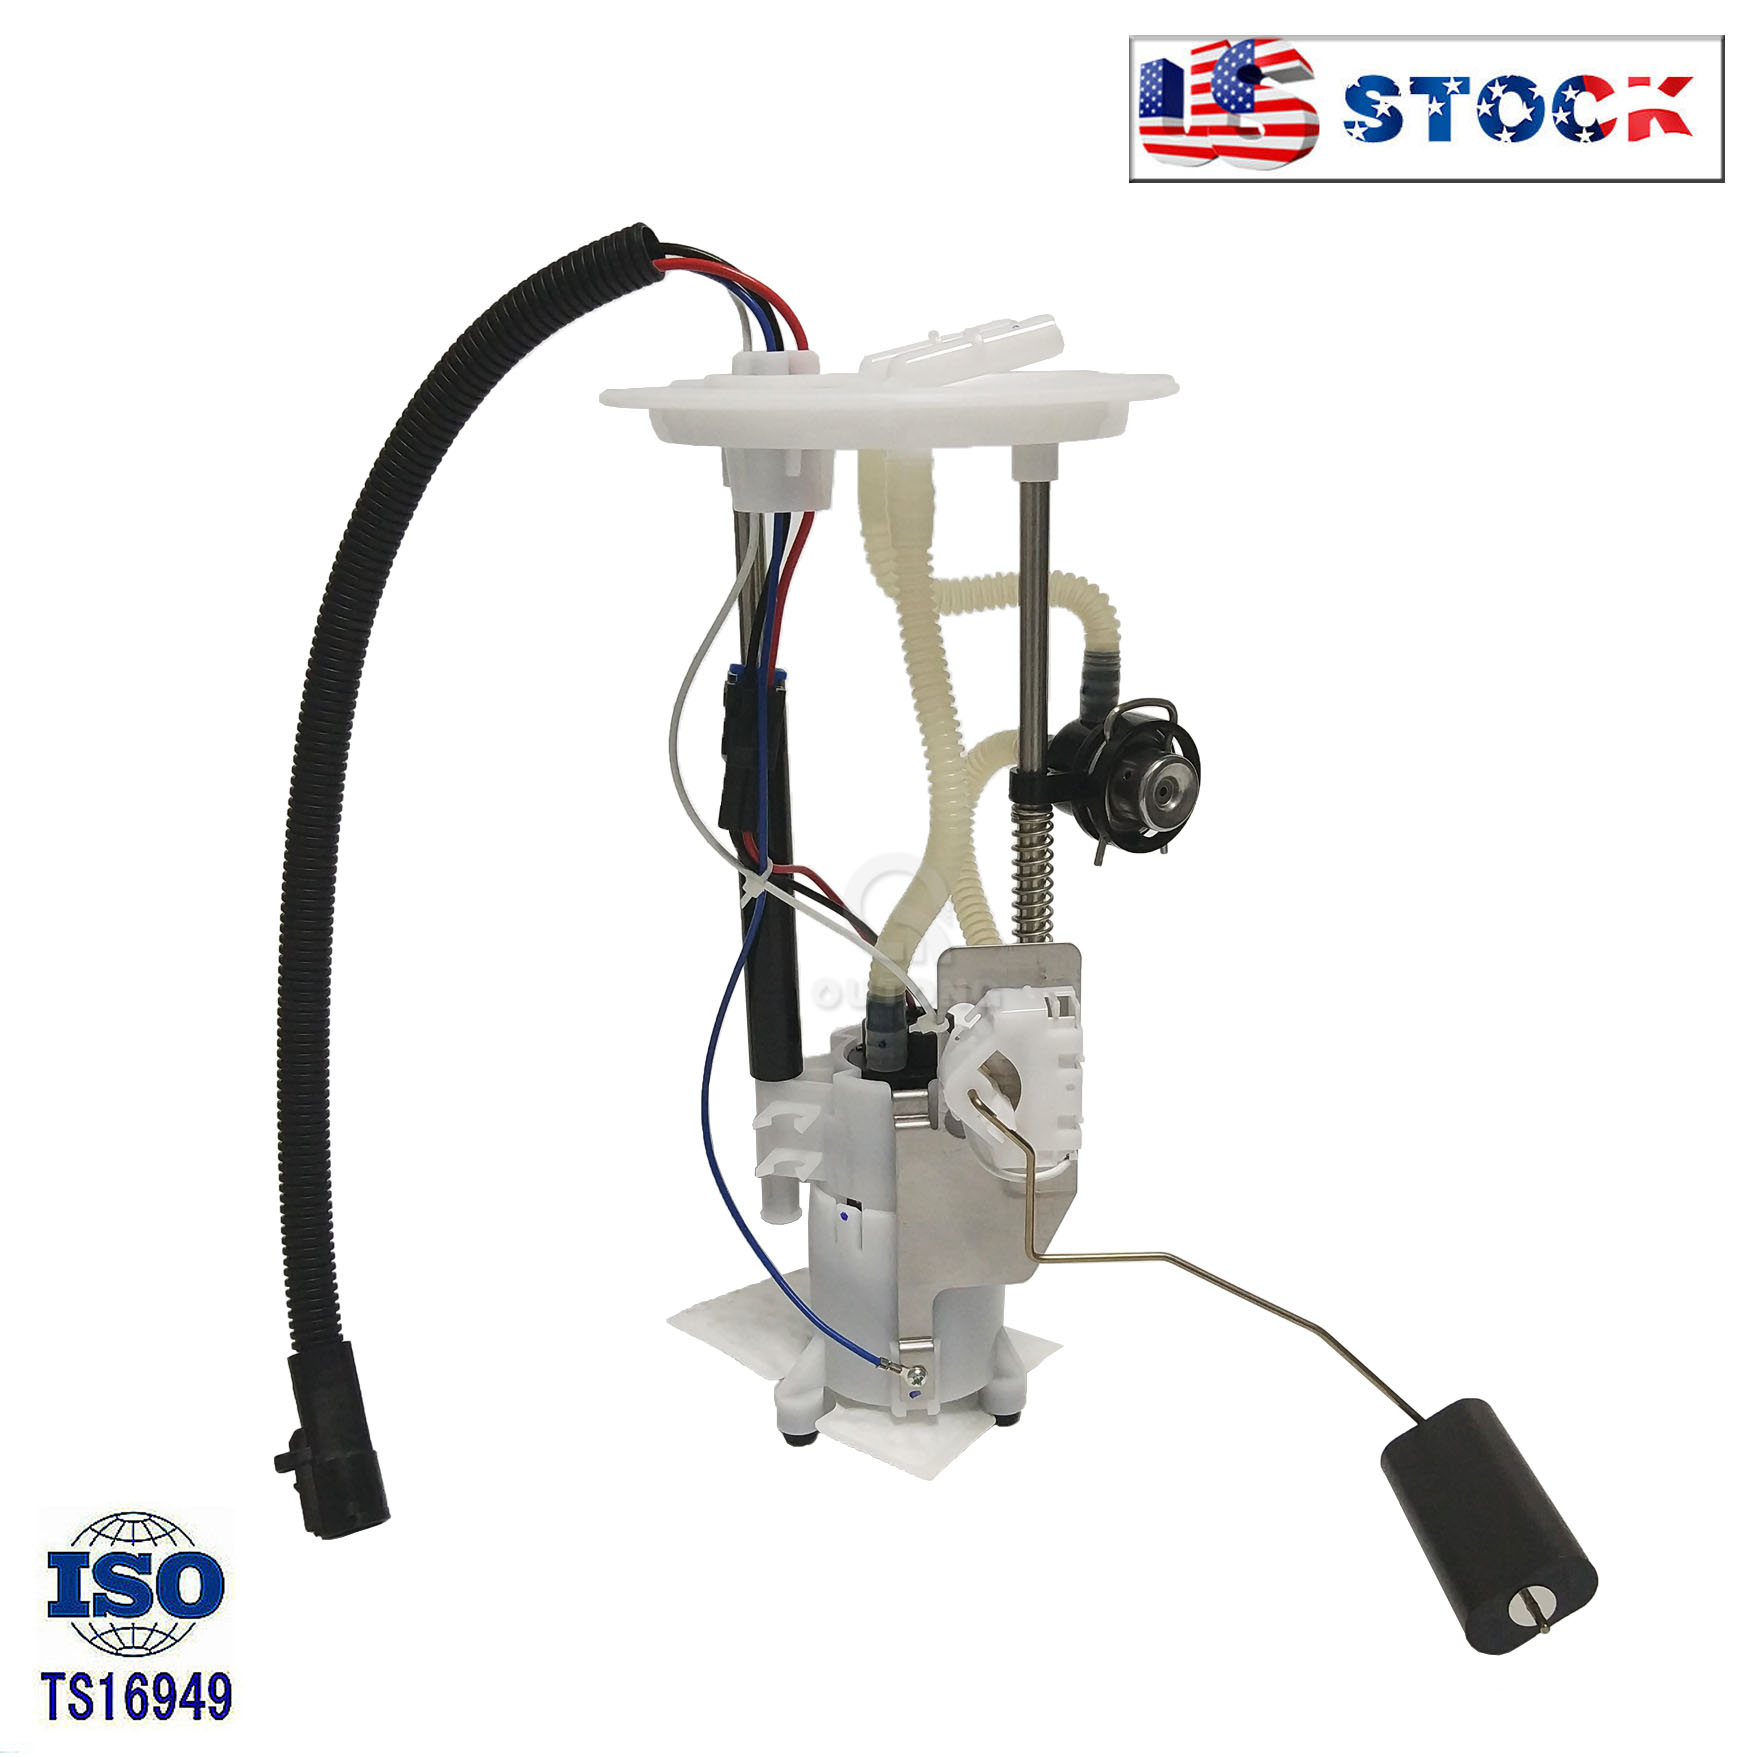 New Fuel Pump Assembly For 2003 2004 Ford Expedition V8 5